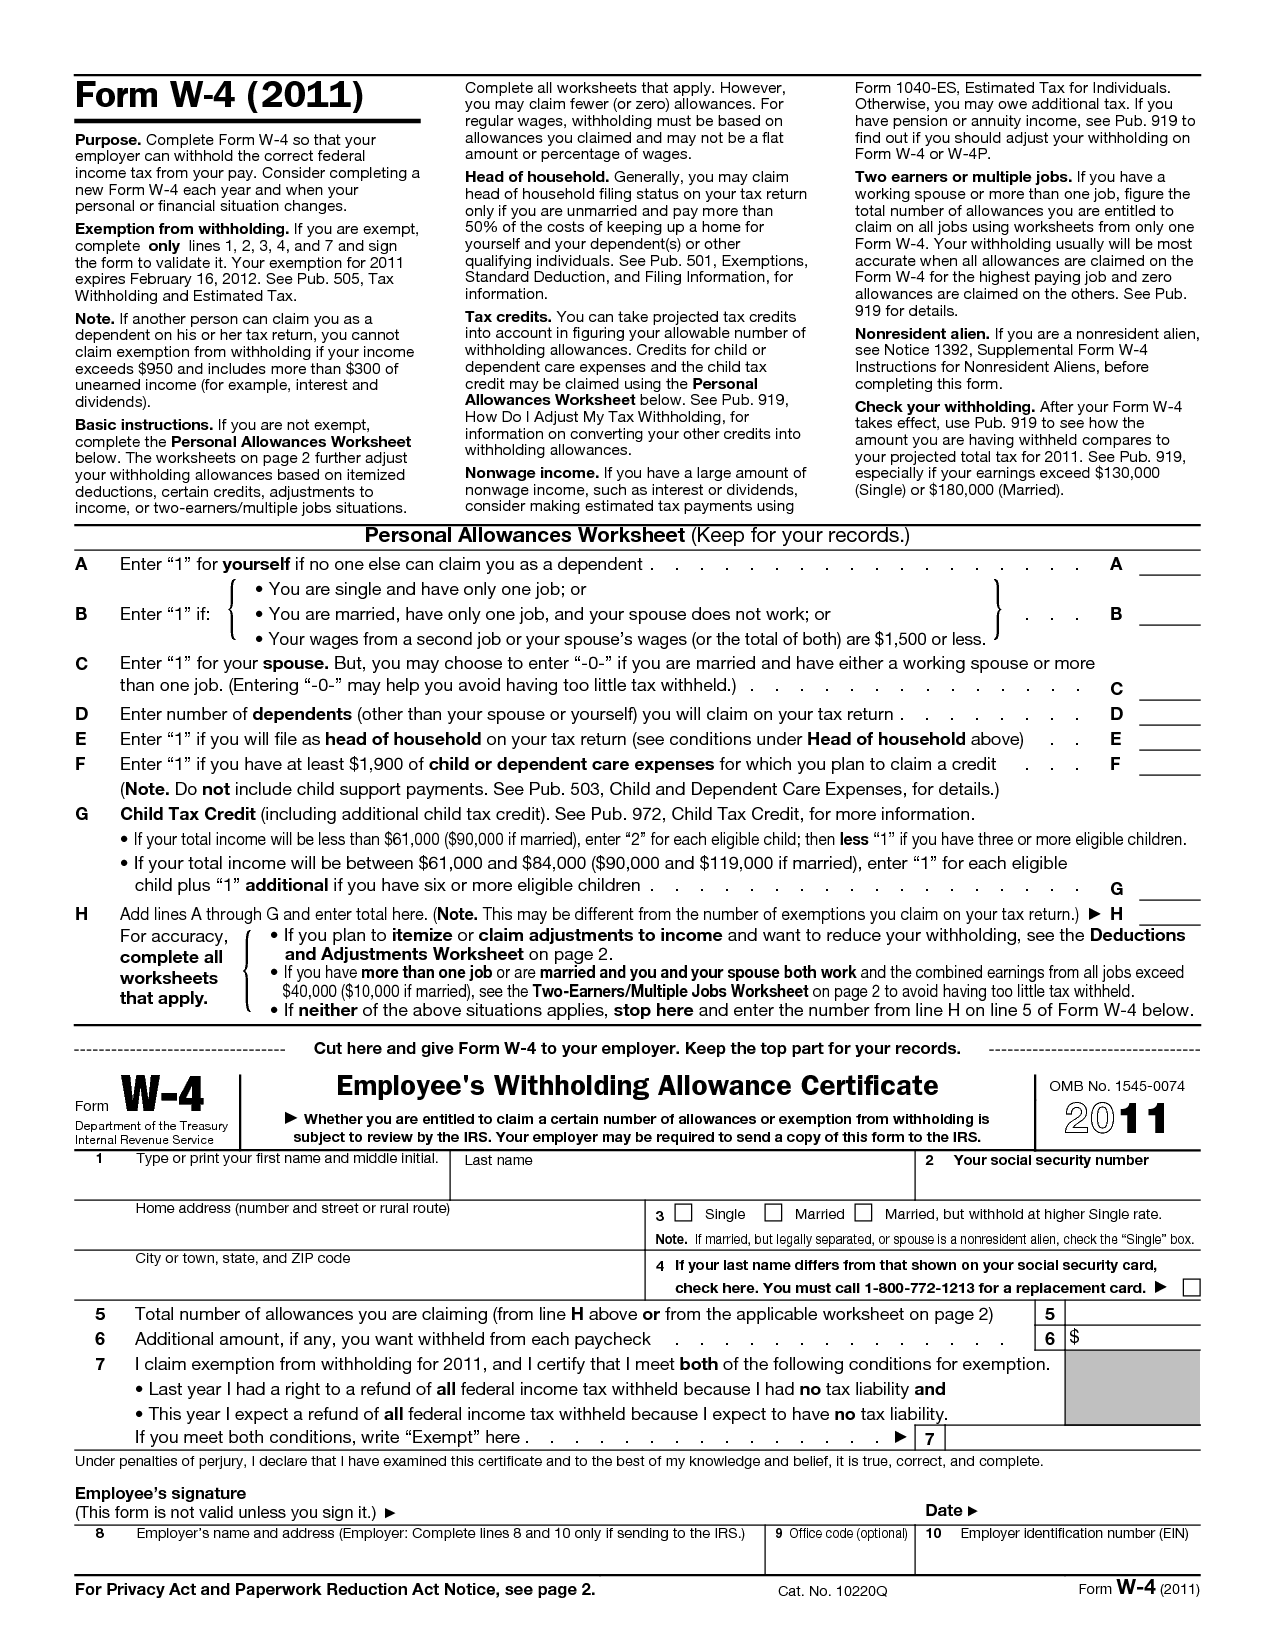 Tweak Your Withholding Taxes Filing A New W 4 Form With Your Employer